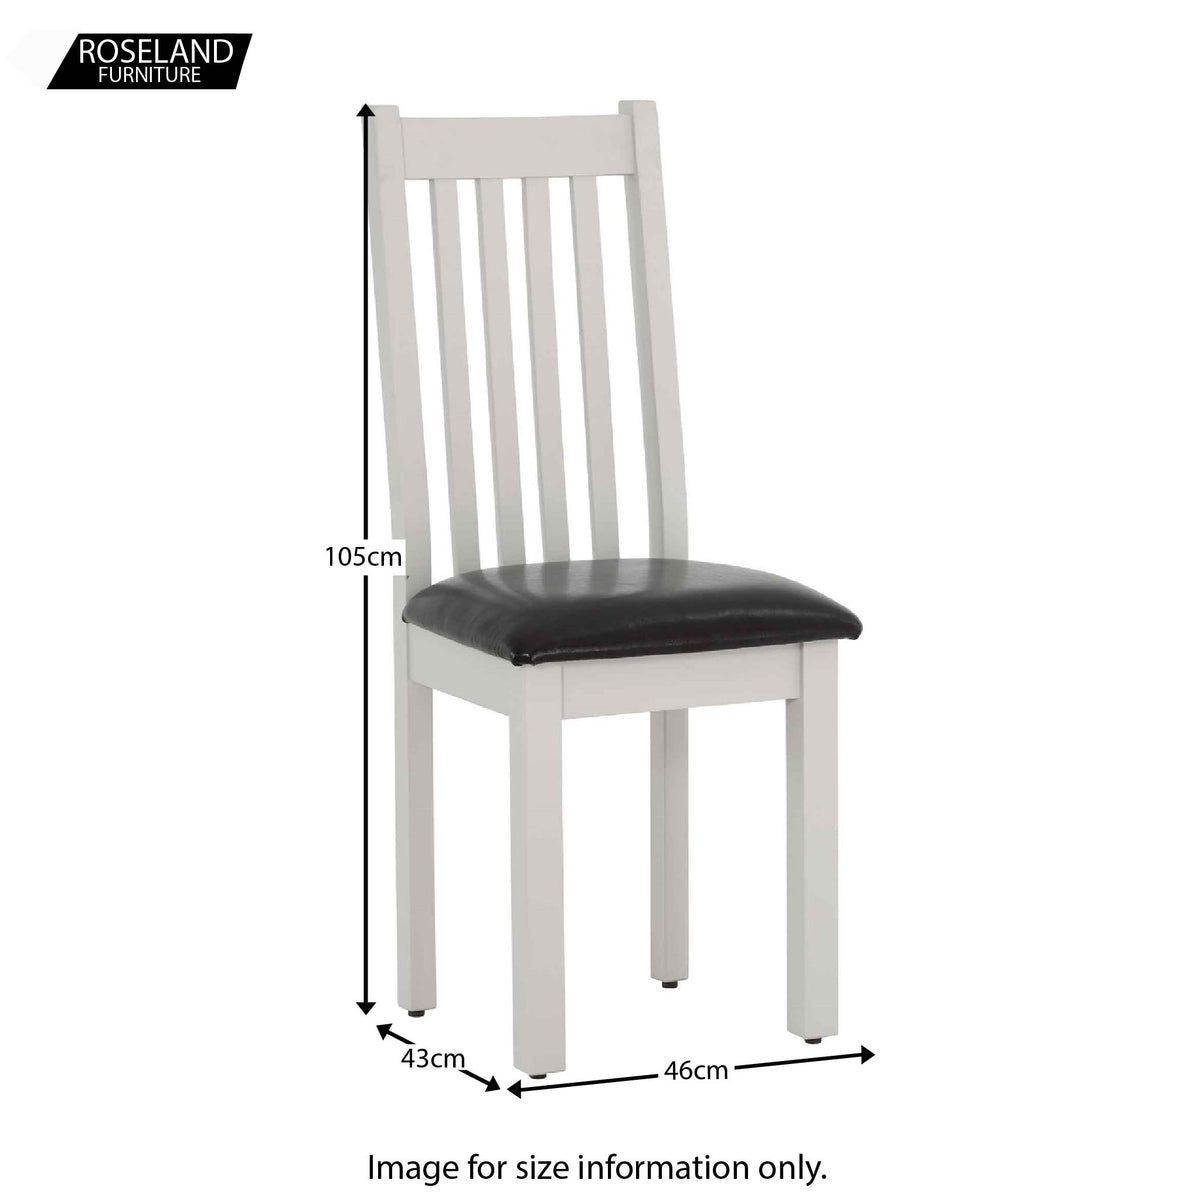 Dimensions for Charlestown Grey Dining Chair with Bi-Cast Leather Seat from Roseland Furniture